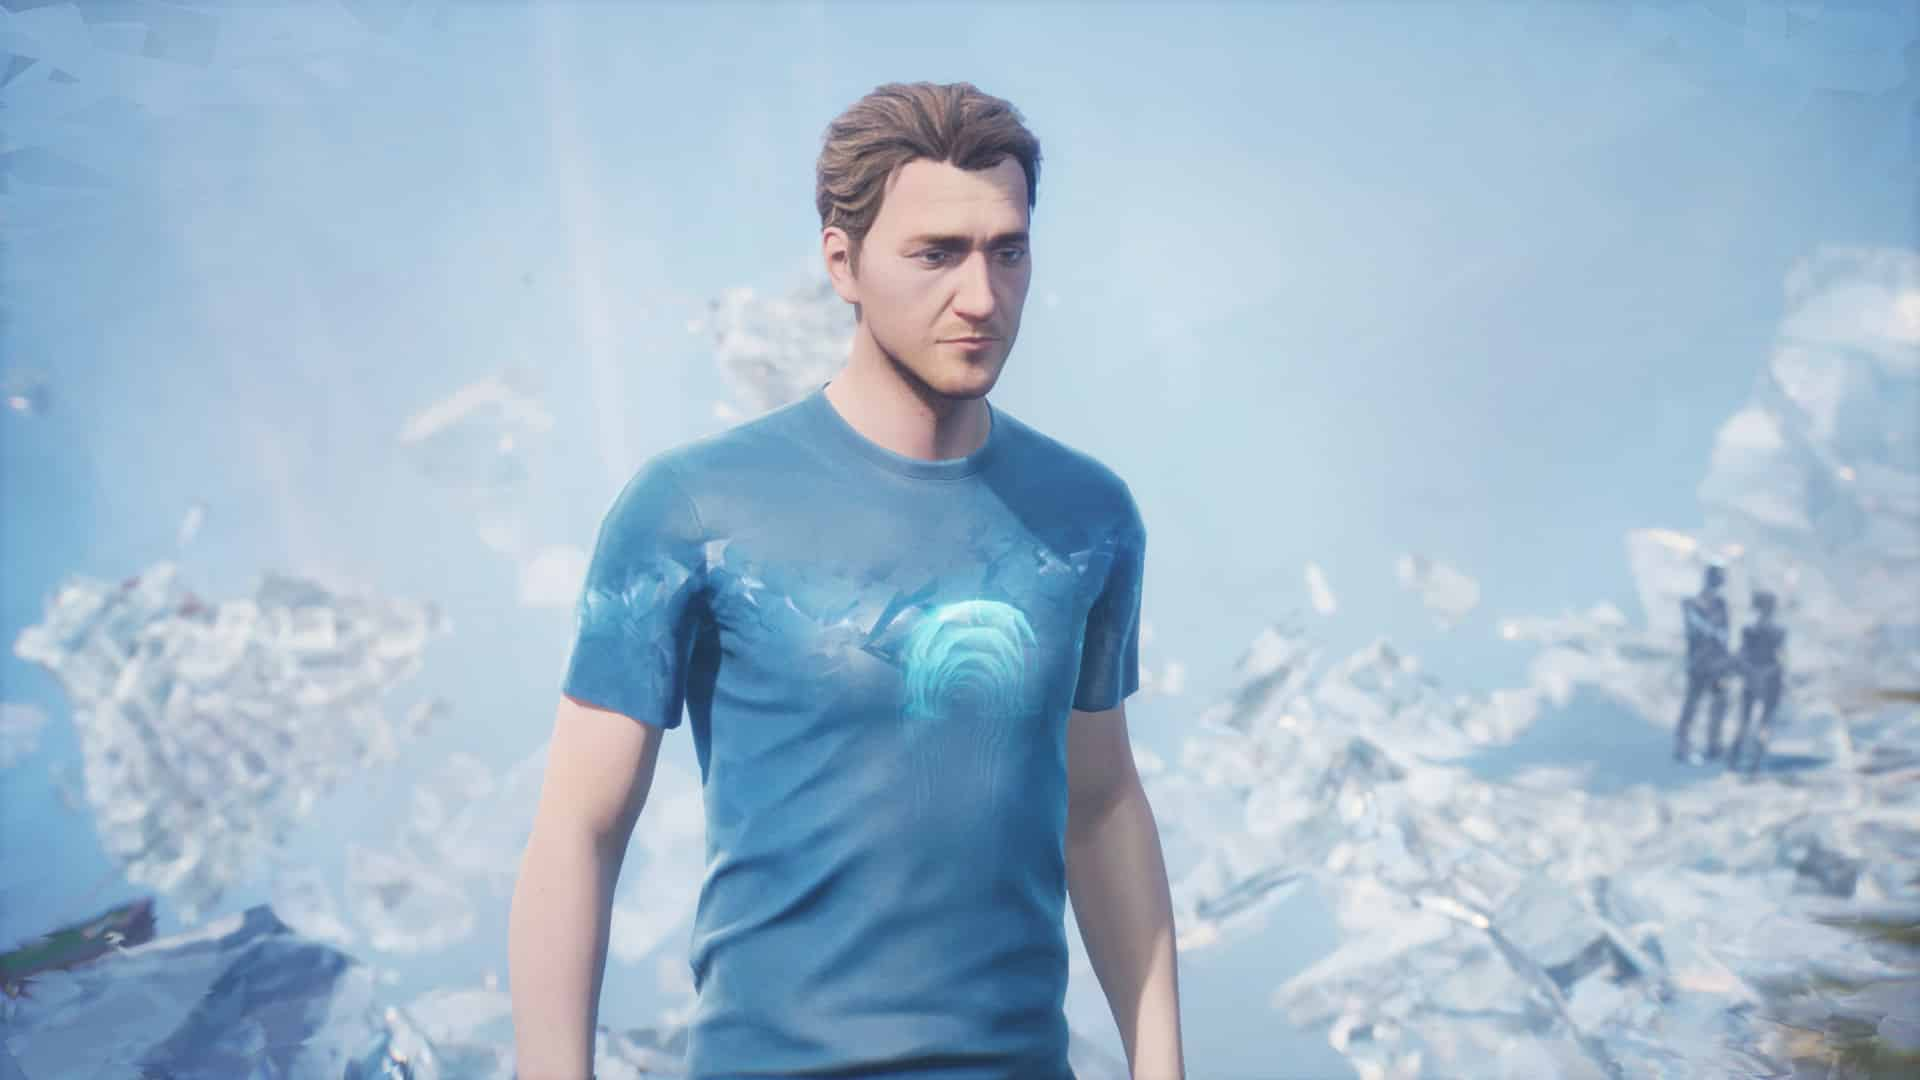 Twin Mirror from Dontnod Sends You Inside Your Own Mind to Solve the Mystery of Your Best Friend's Death